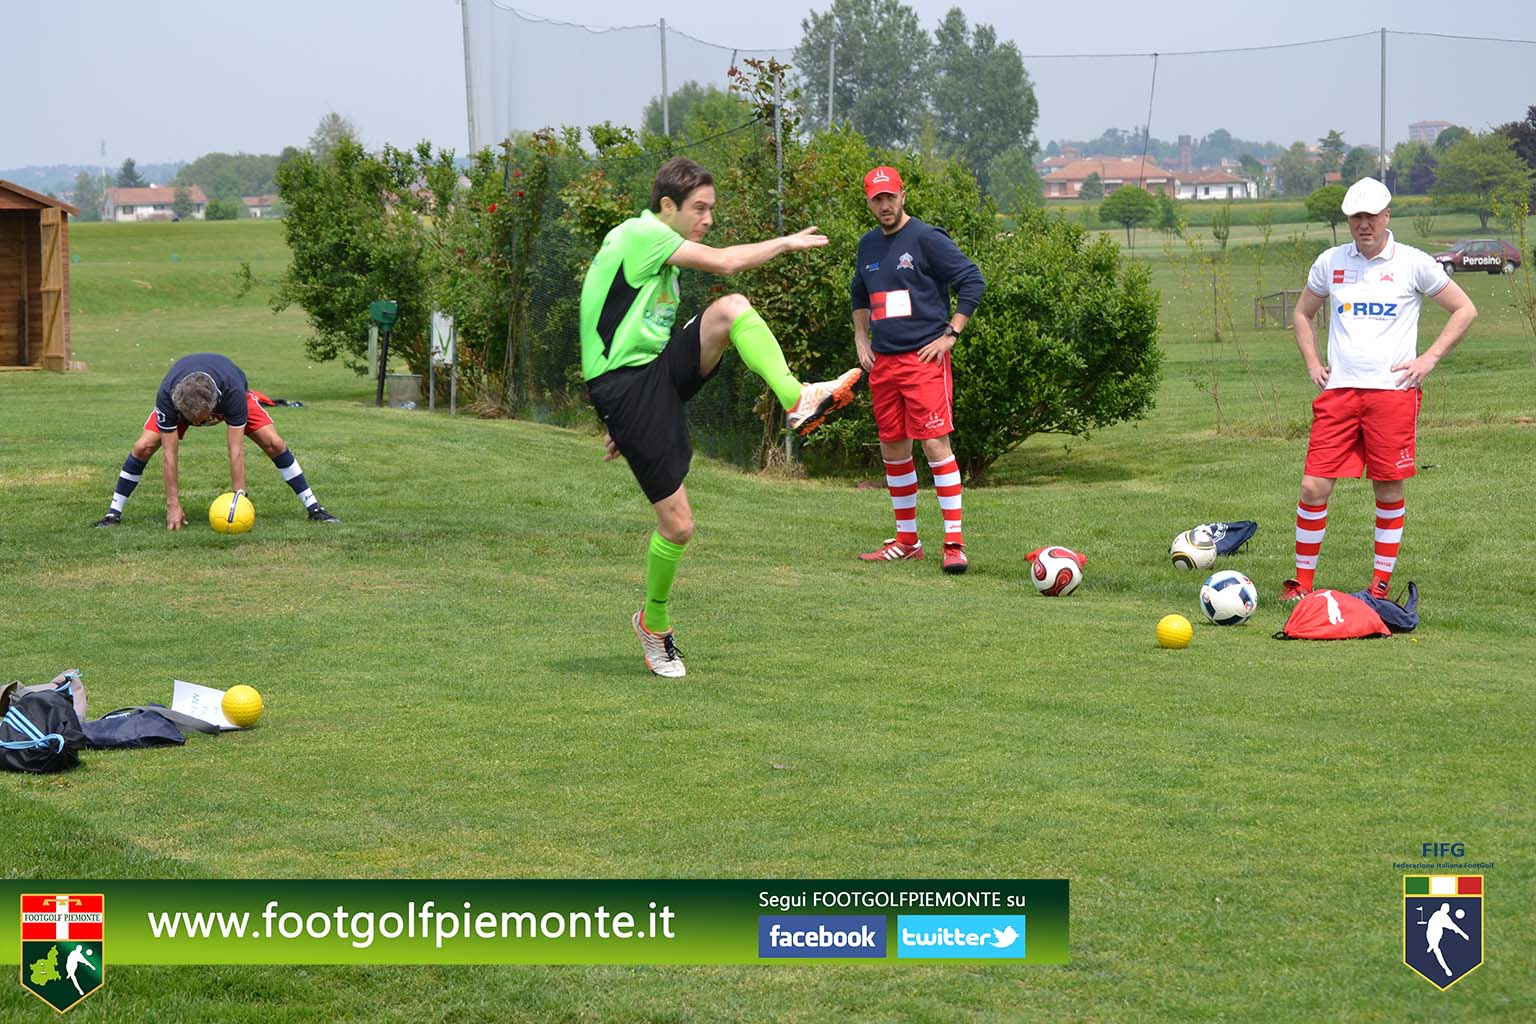 FOTO 9 Regions' Cup Footgolf Piemonte 2016 Golf Città di Asti (At) 30apr16-12